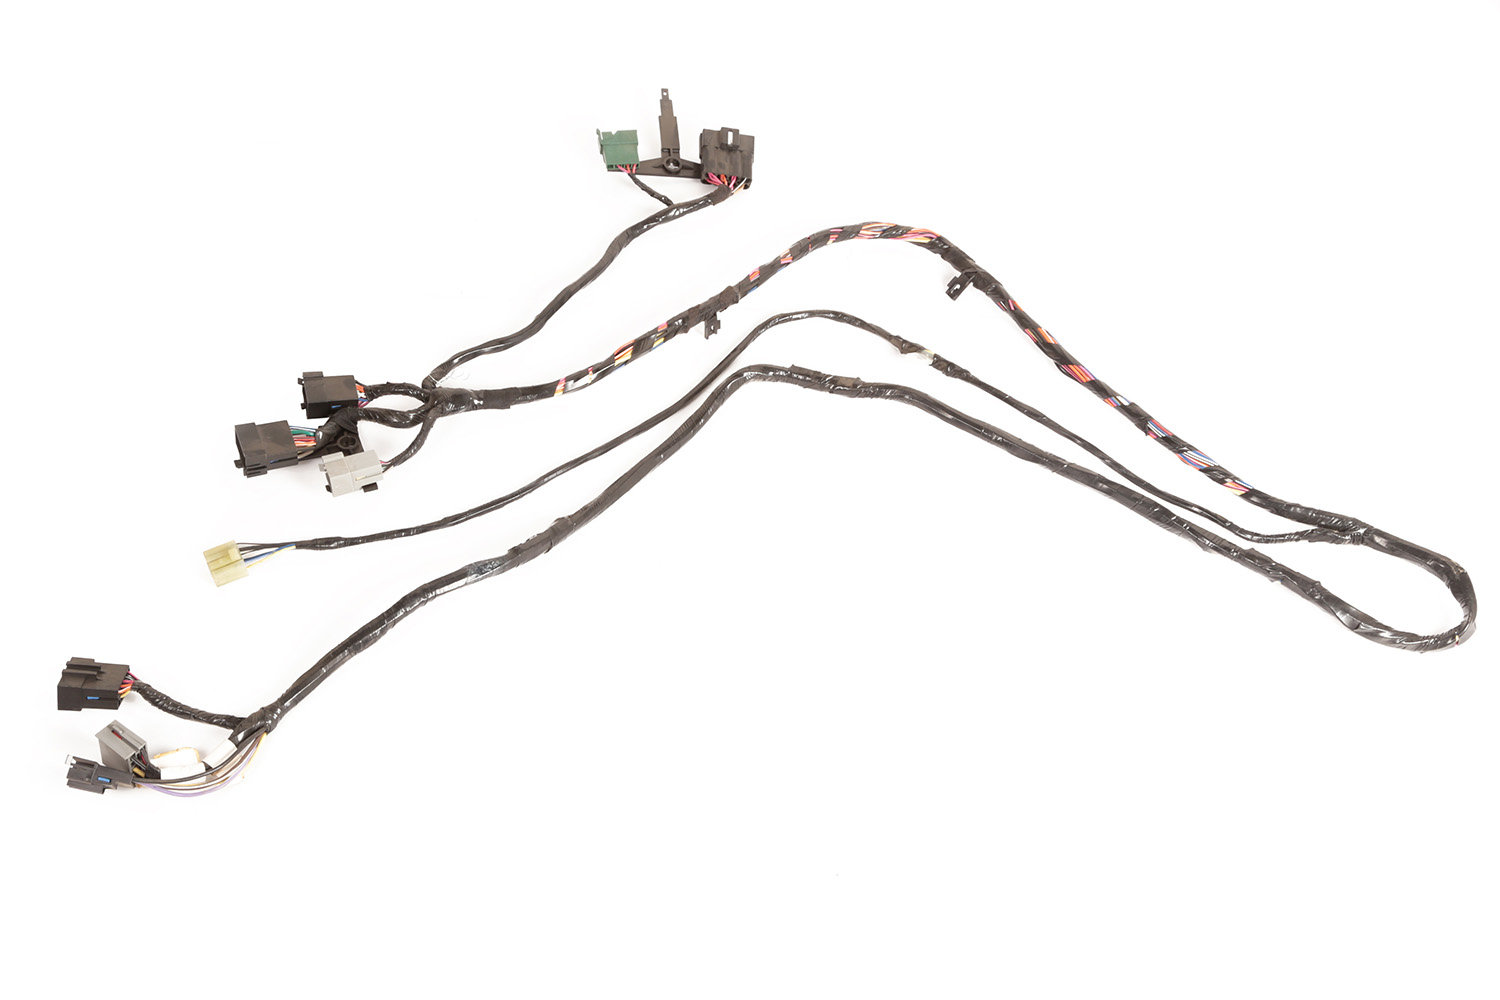 OMIX-ADA 56009881 Wiring Assembly for 1996 Jeep Cherokee